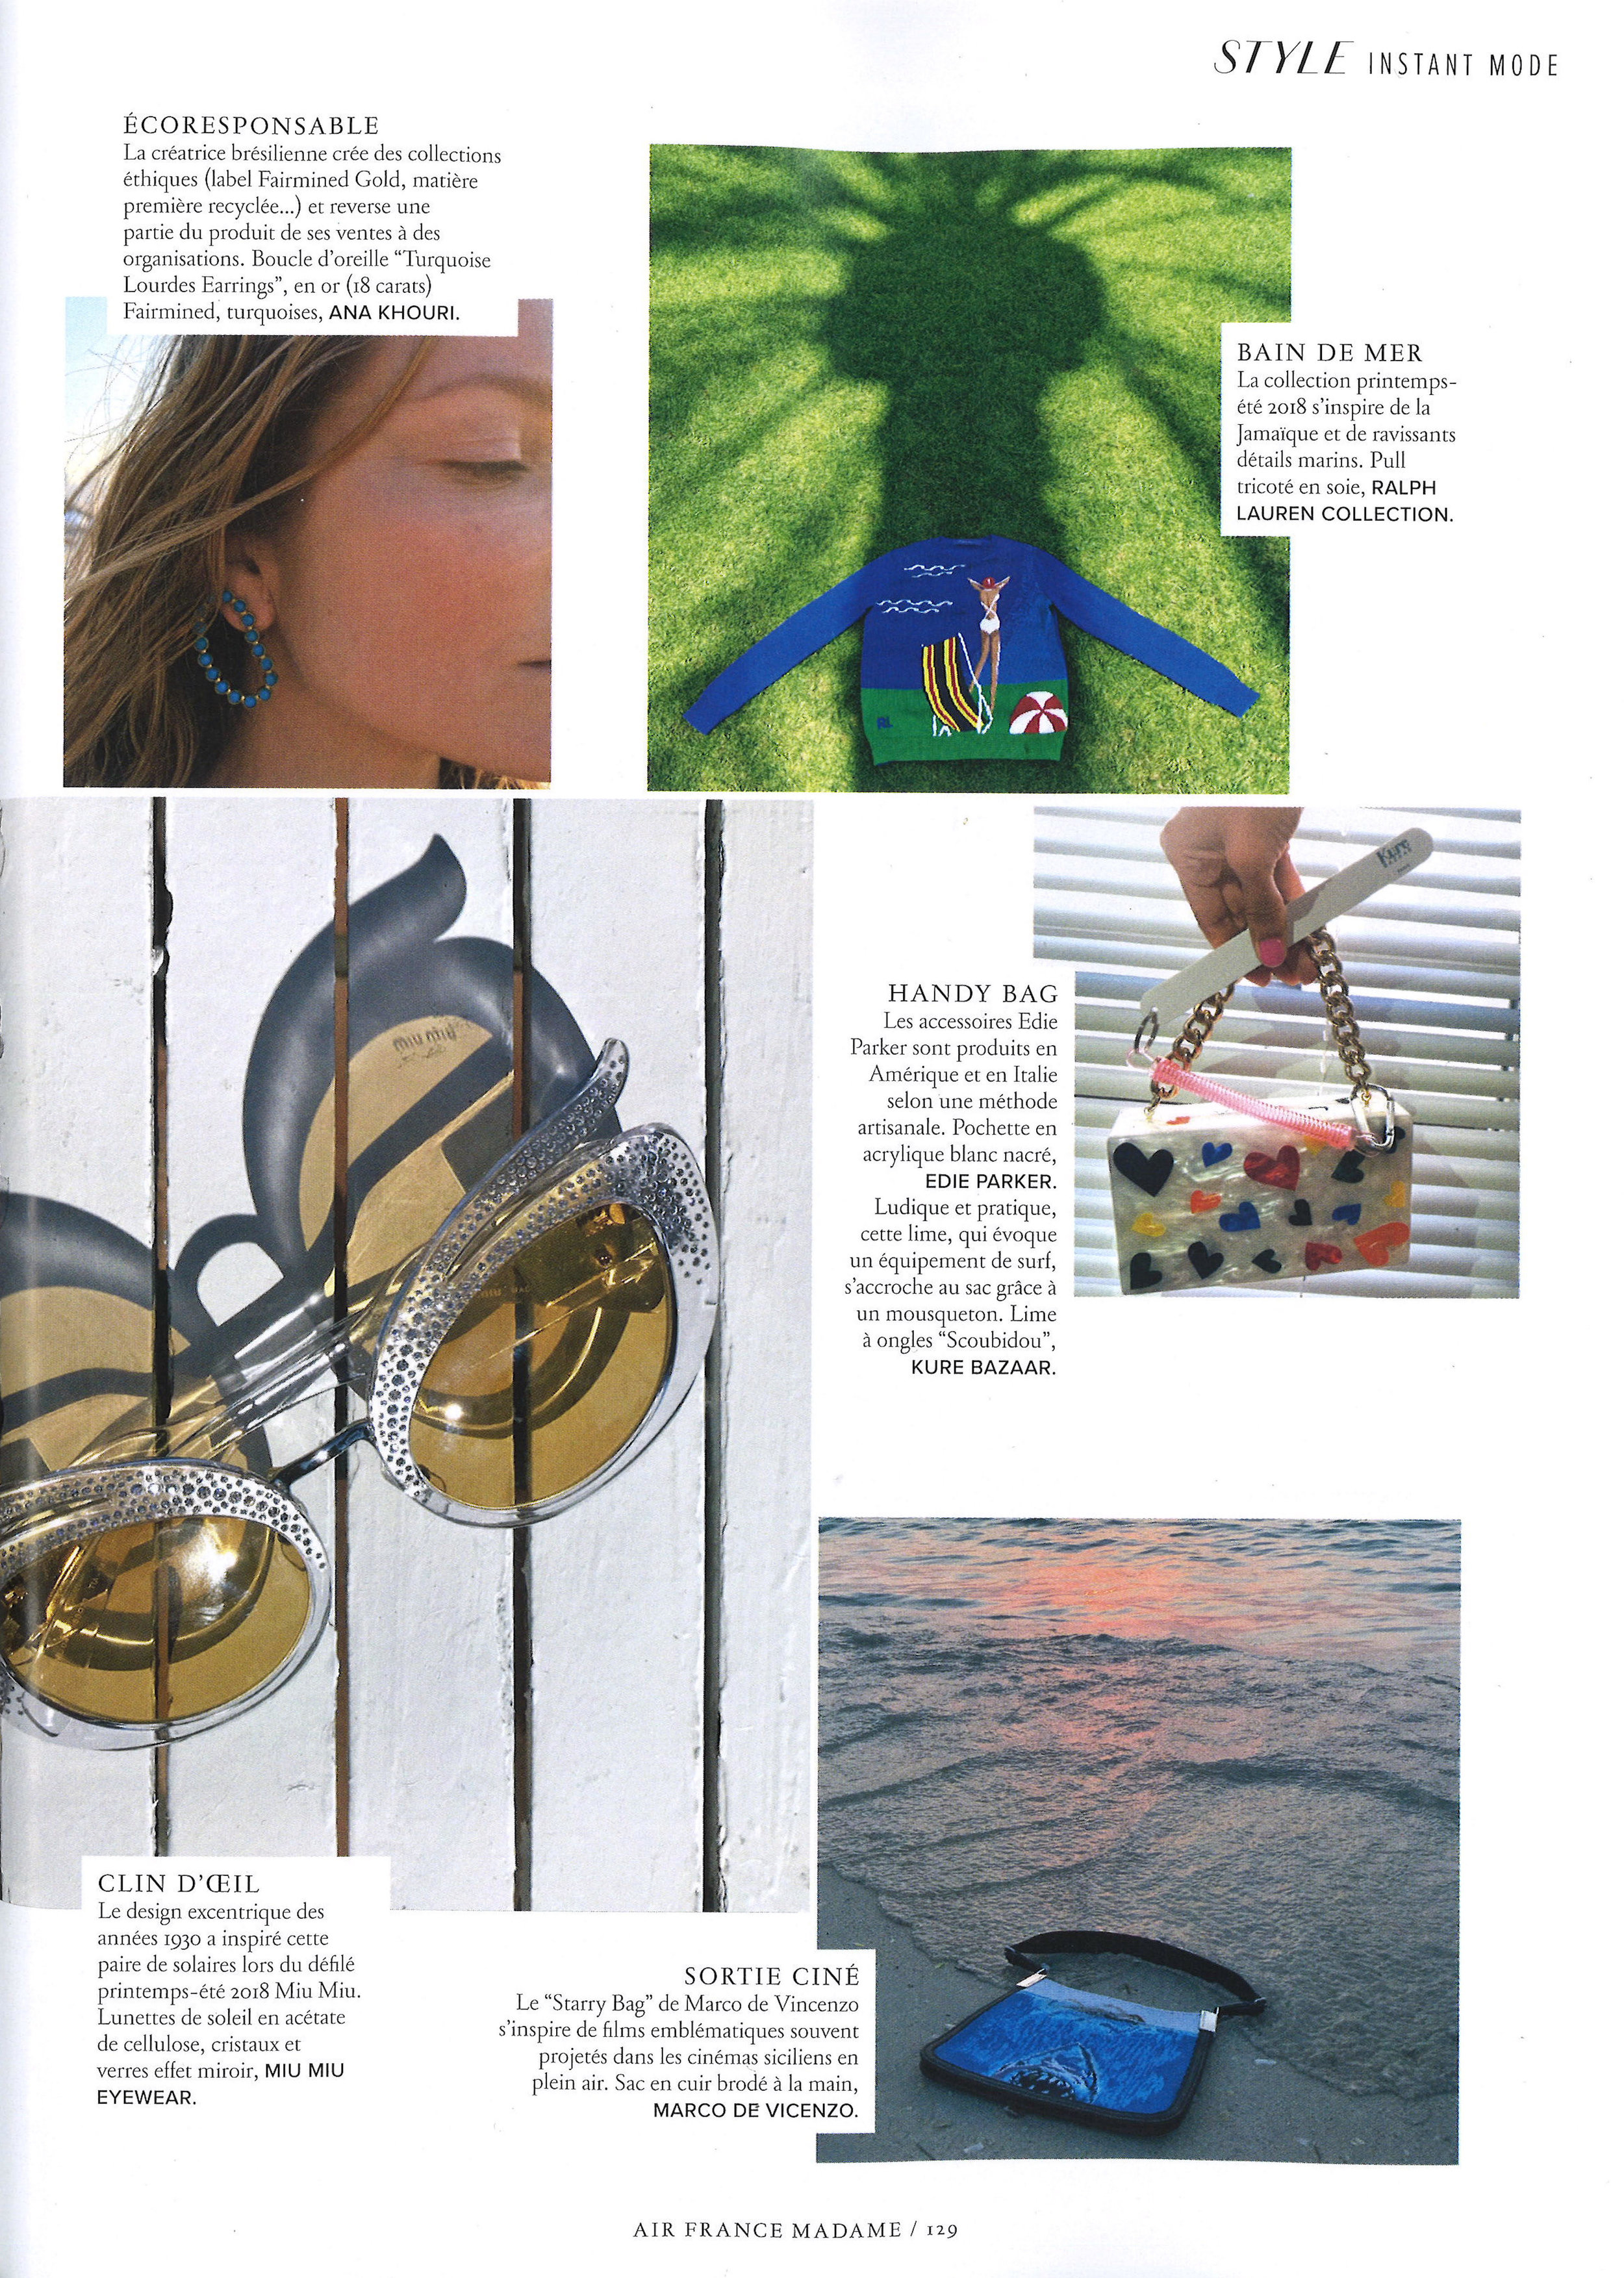 Air France Madame June July 2018 Turquoise Lourdes Earrings